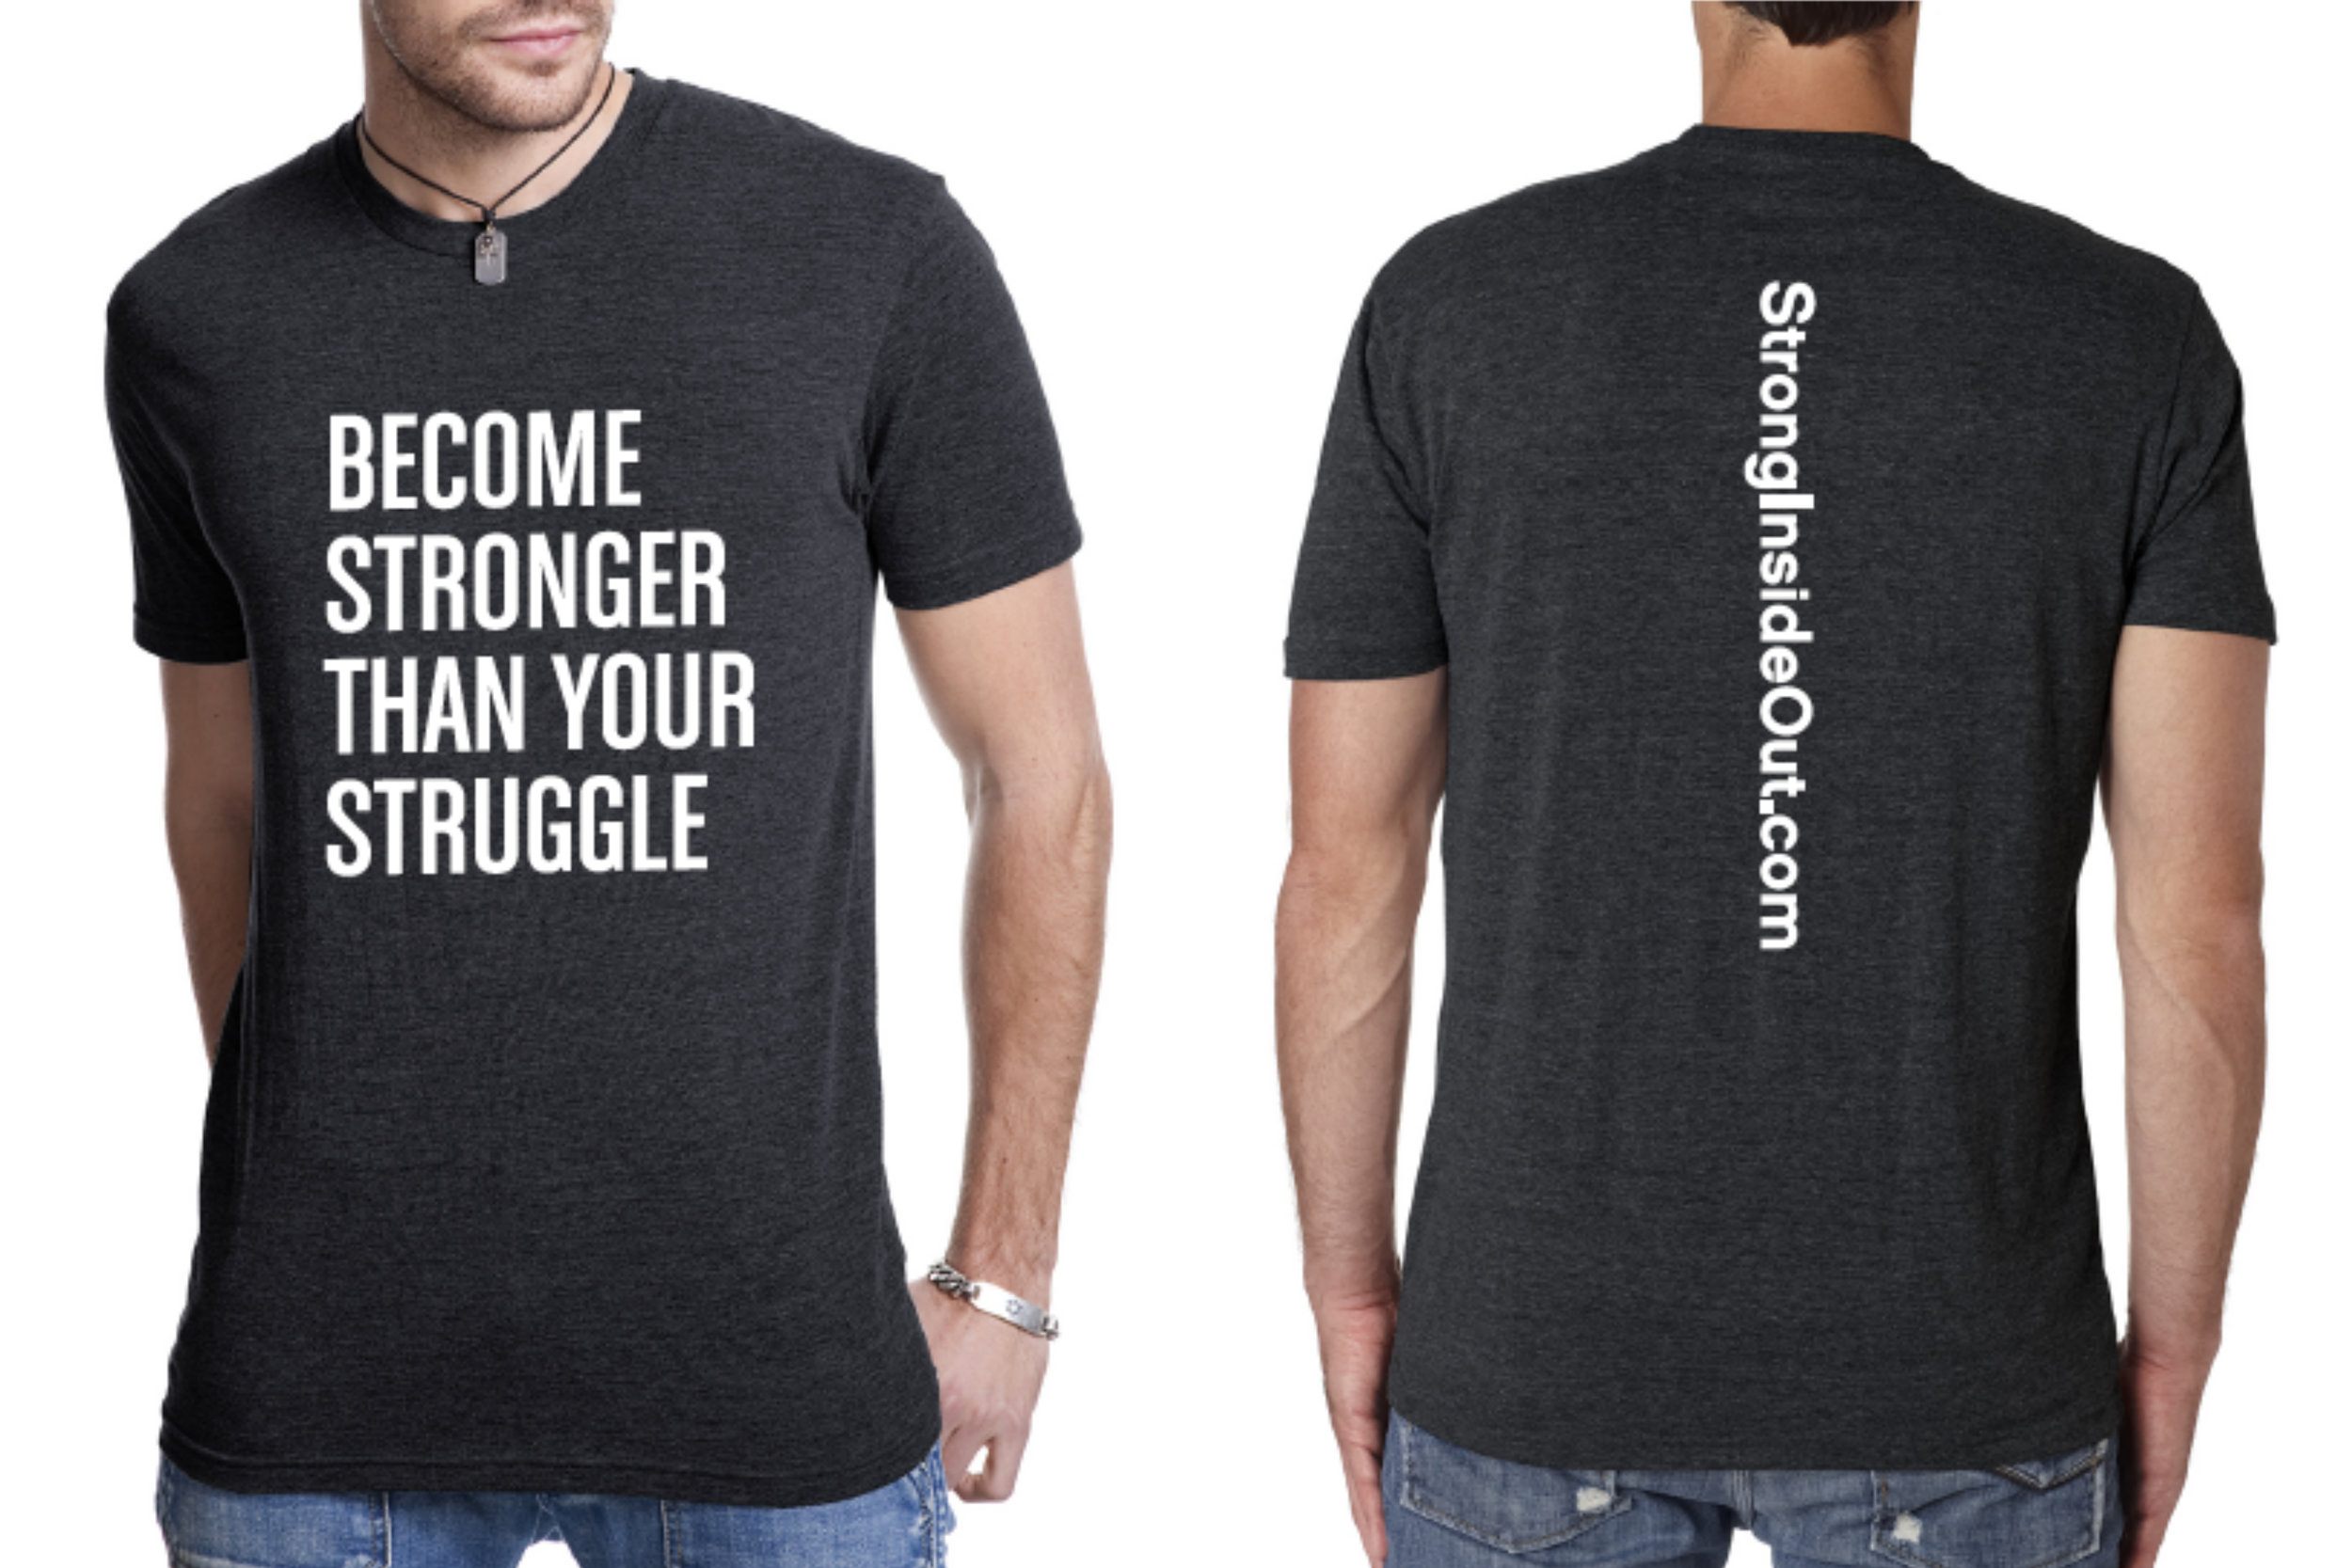 Become stronger than your struggle shirt guys front and back.jpg